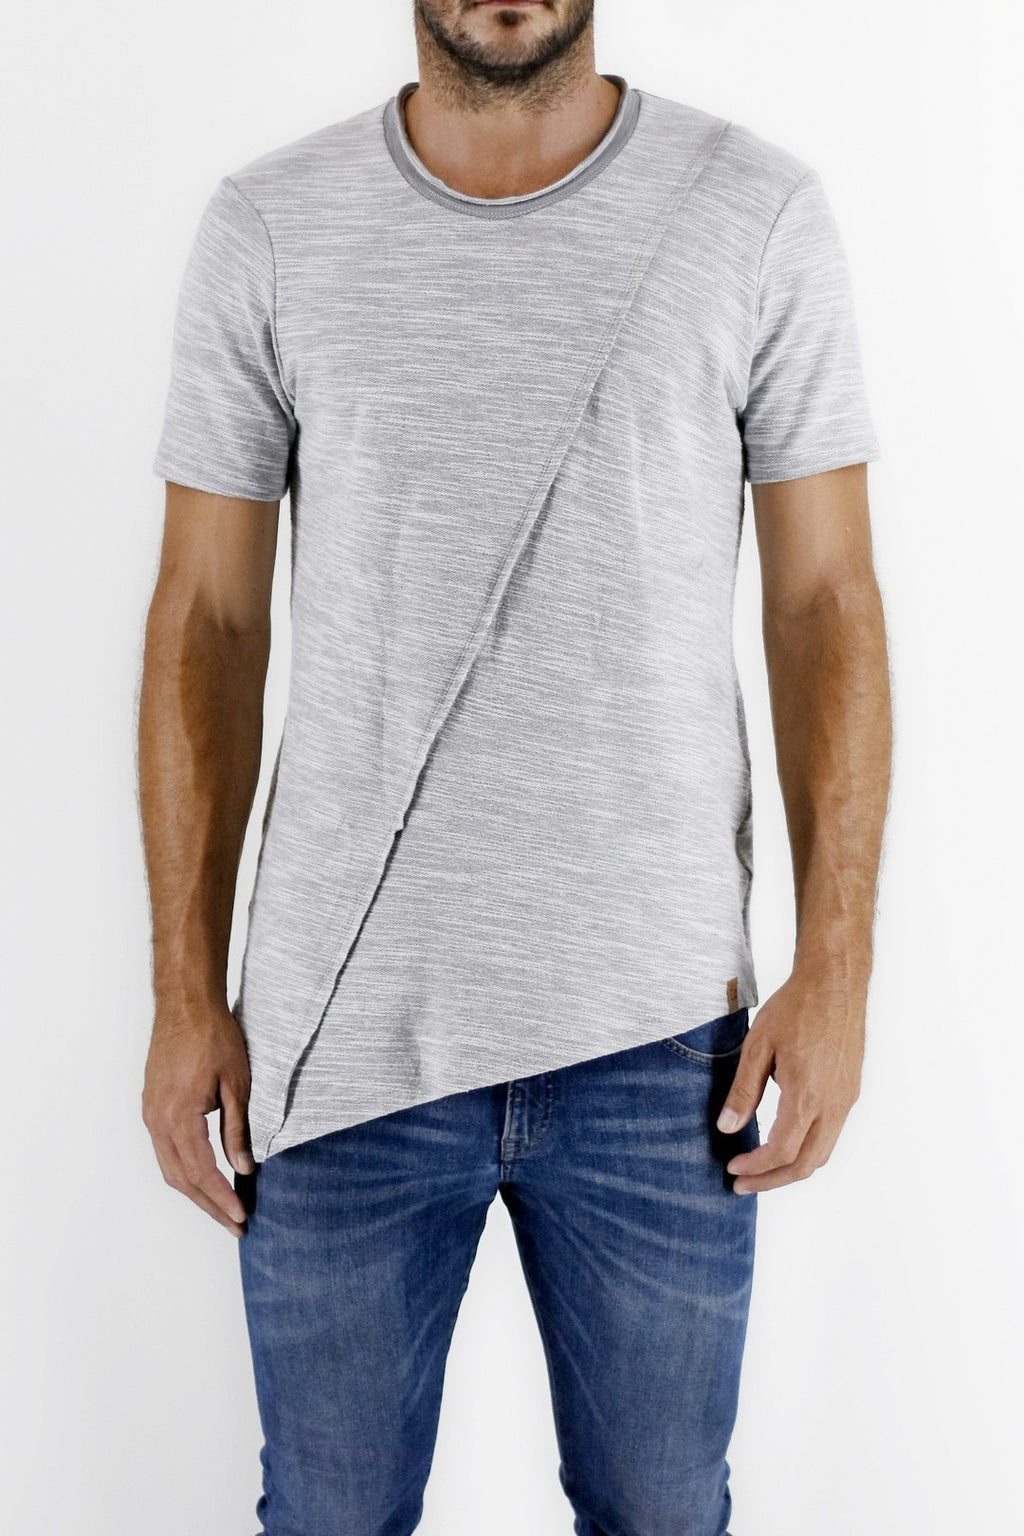 ZG5172 Asymmetric  unbrushed ice melange T-shirt